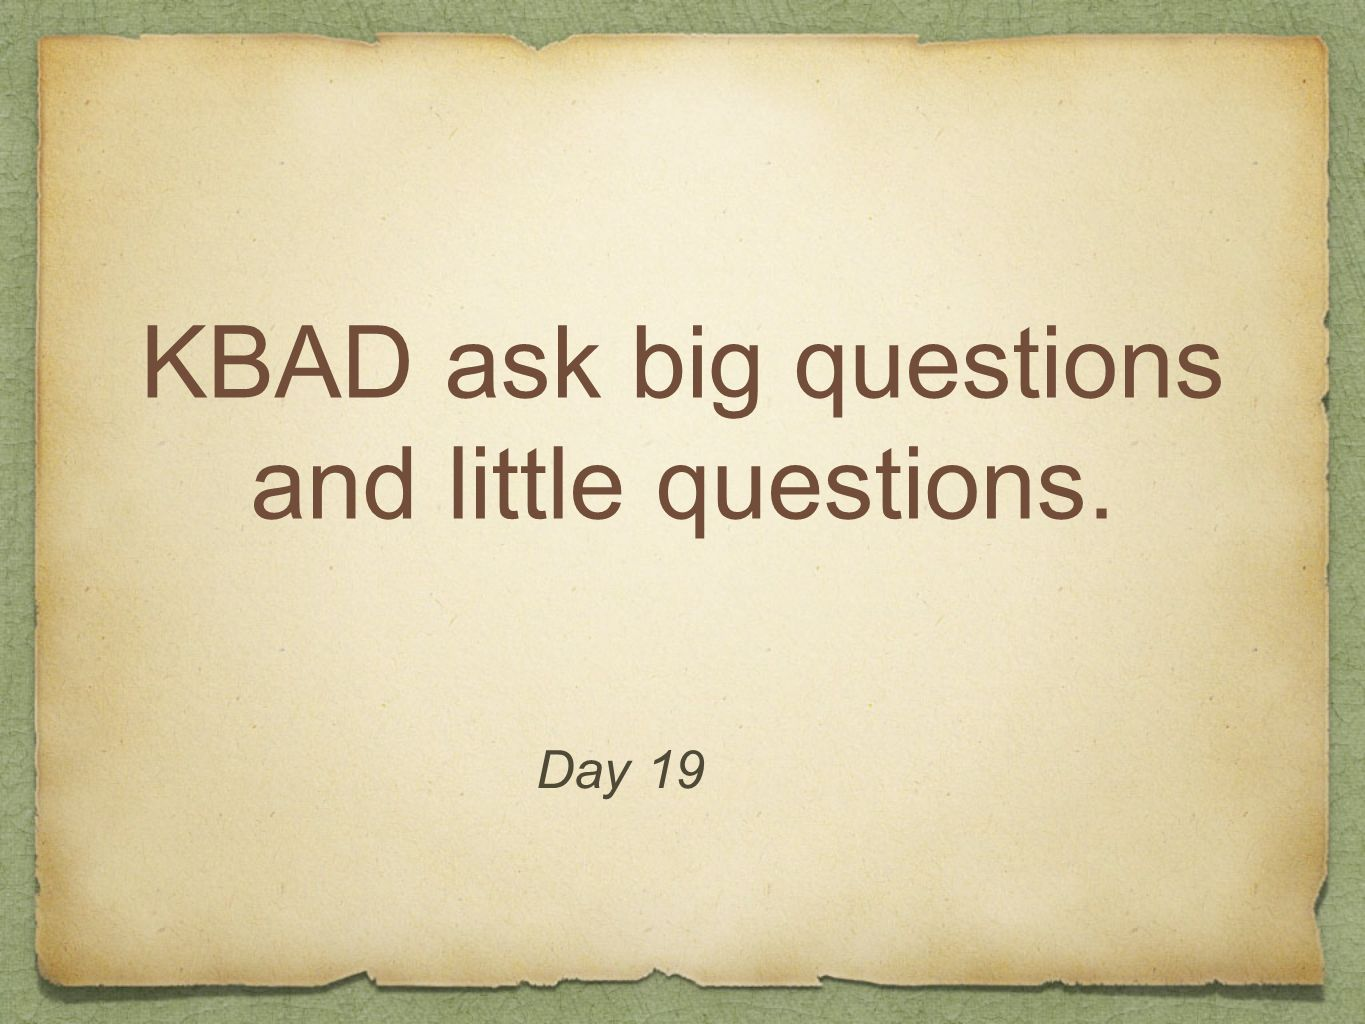 KBAD ask big questions and little questions.